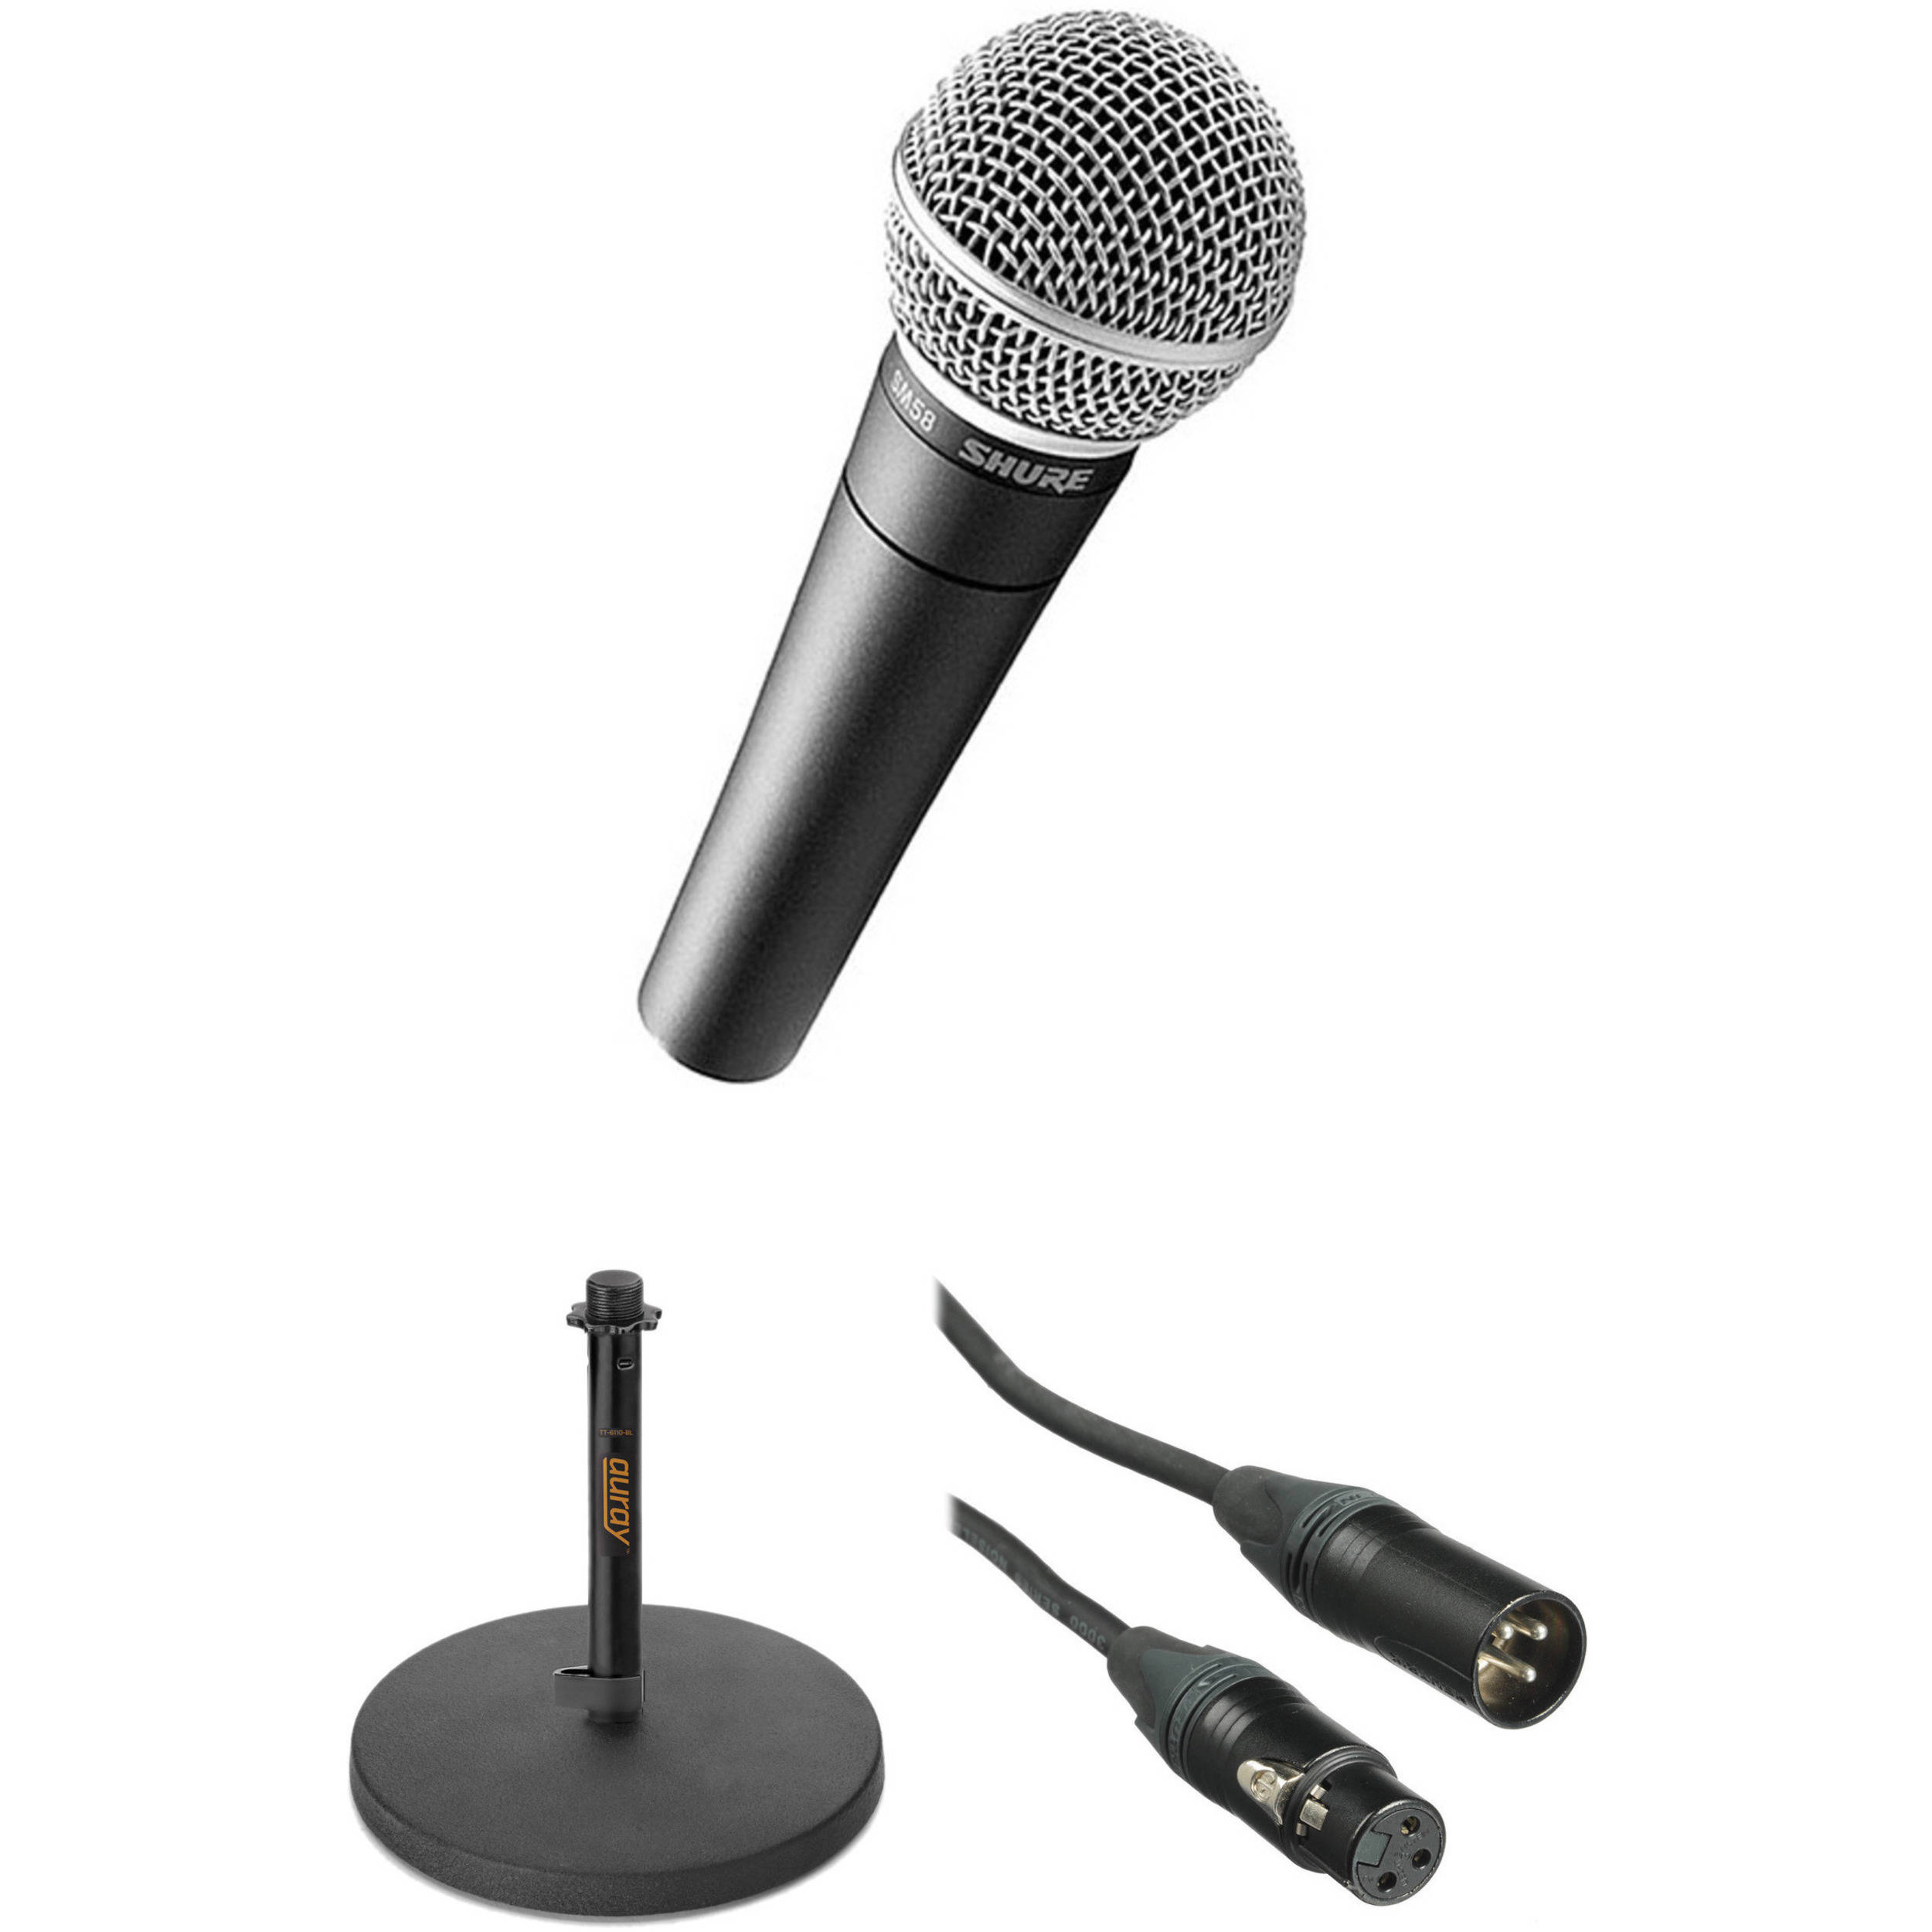 2500x2500 Shure Voice Over Microphone Kit Bamph Photo Video